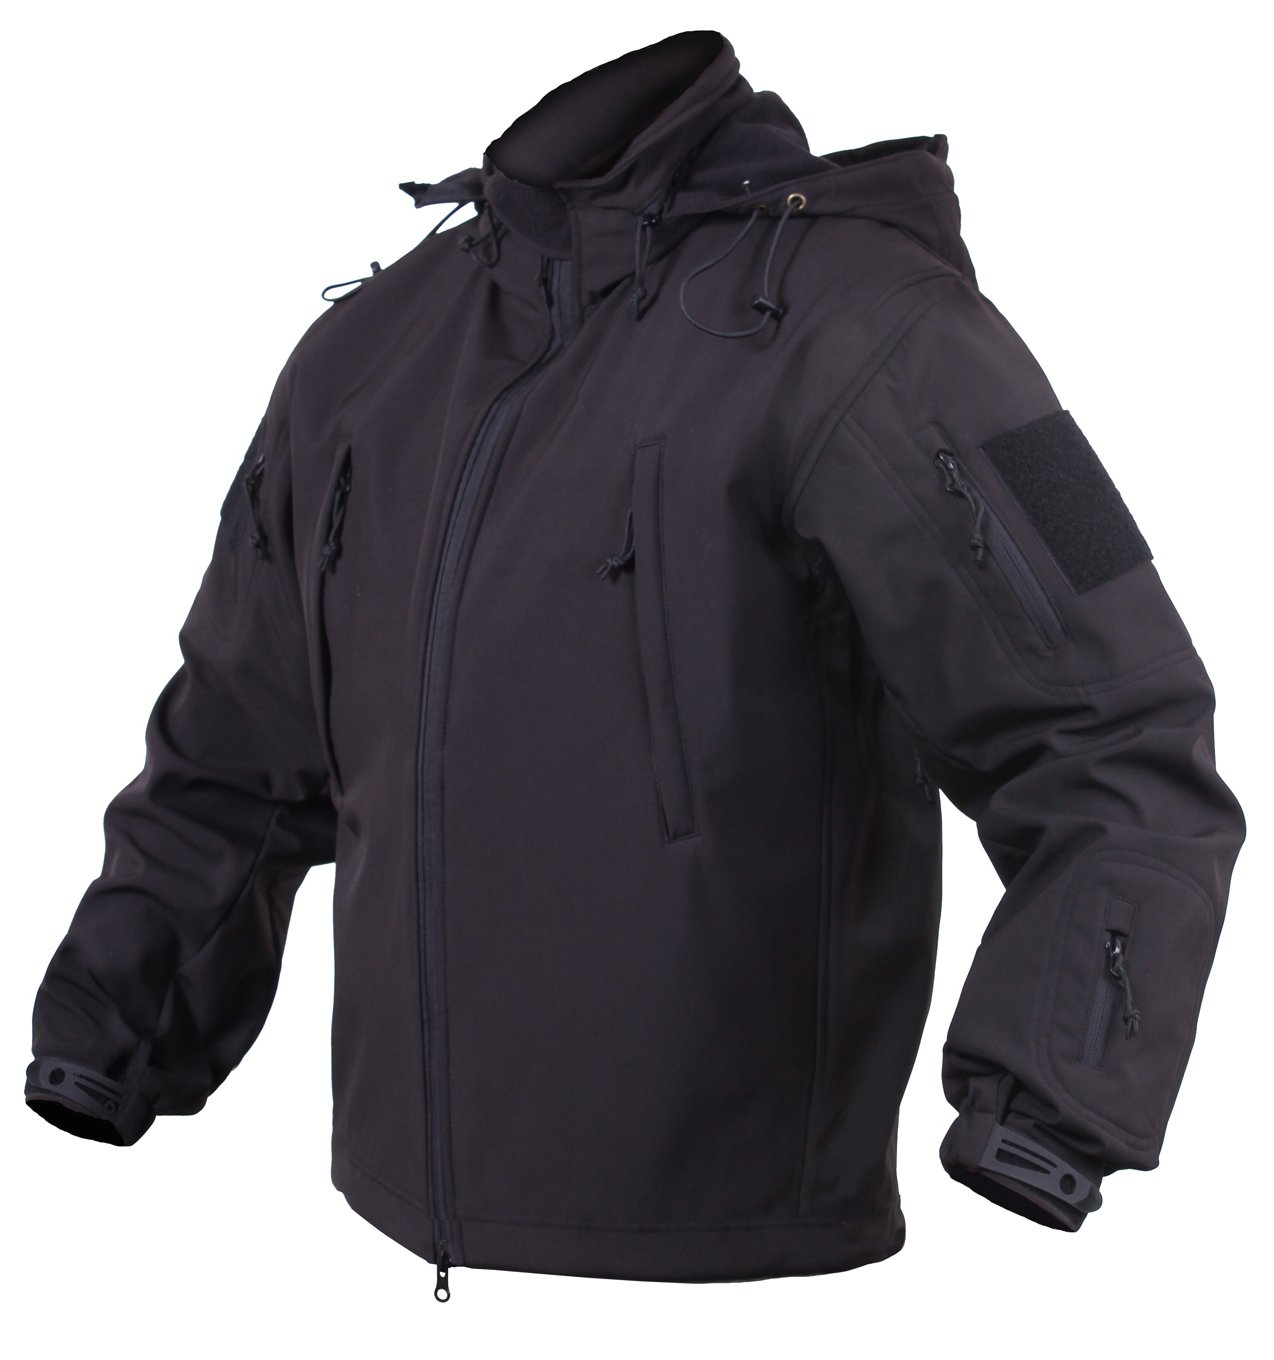 Rothco Concealed Carry Soft Shell Jacket, Black, 4X-Large